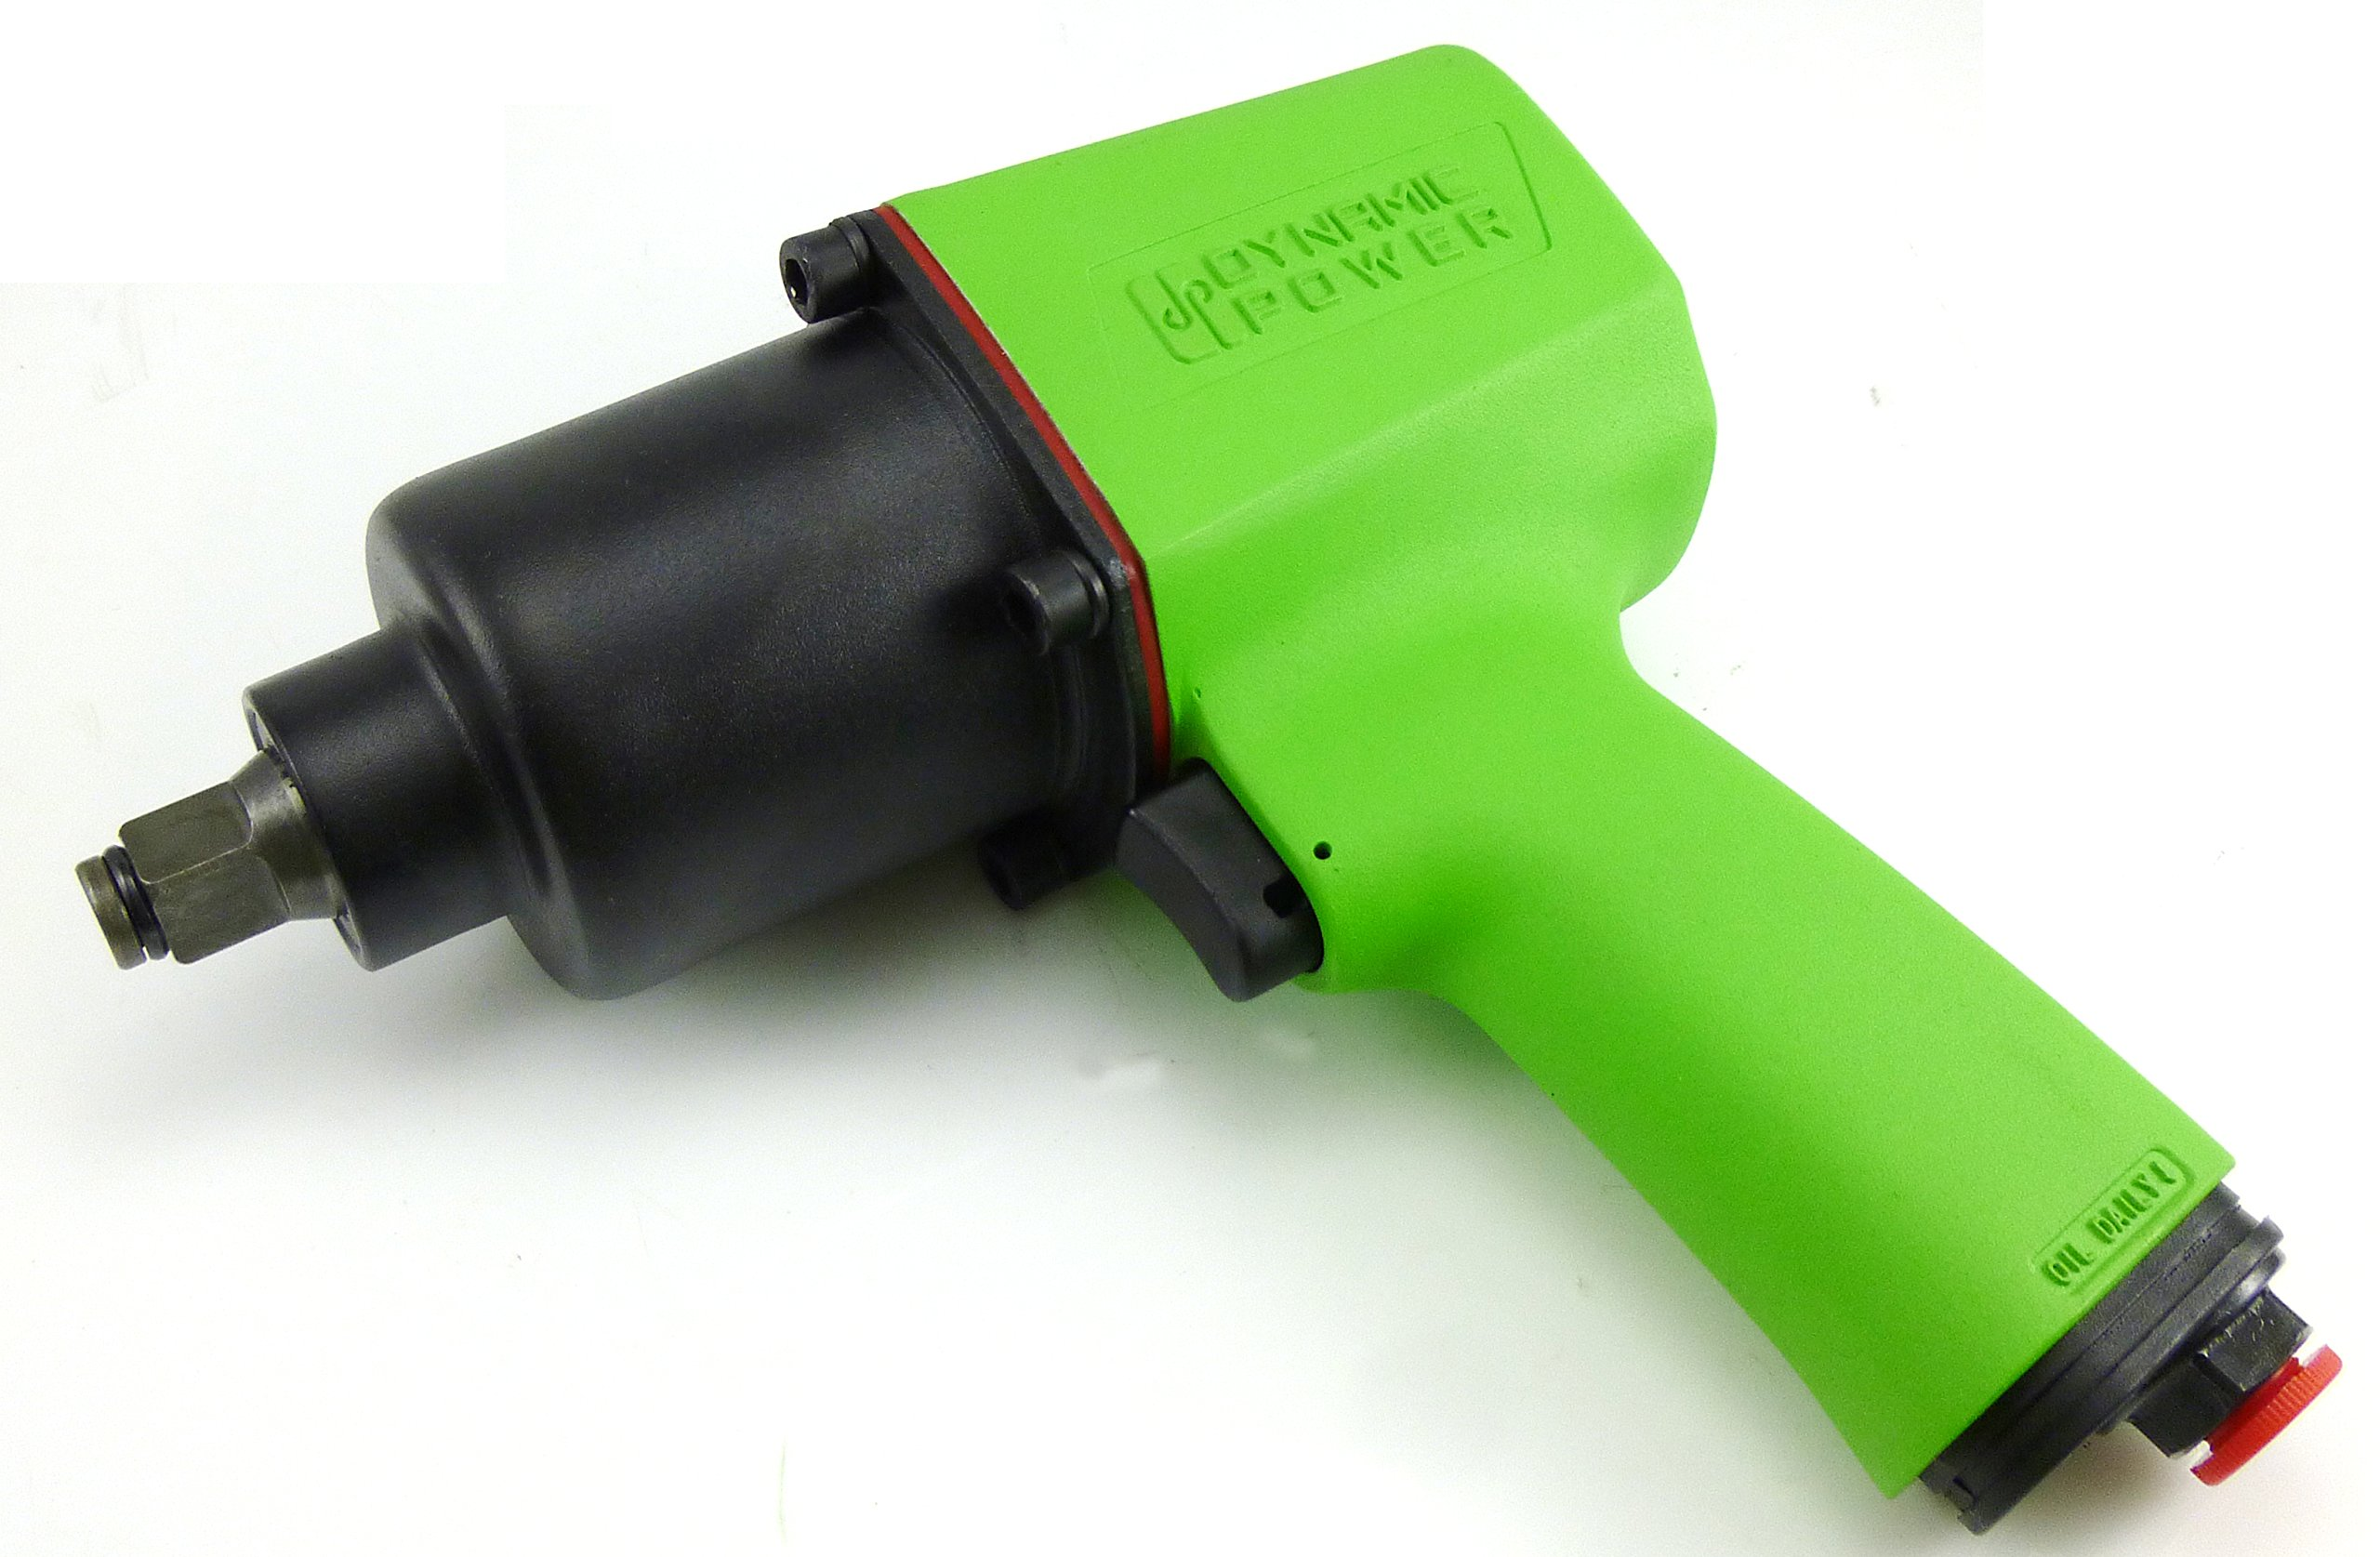 Dynamic Power Air Impact Wrench - Twin Hammer 1/2'' Impact Driver w/Composite Body and Comfort Grip. 600 ft-lb. D62627 by Vinvoli